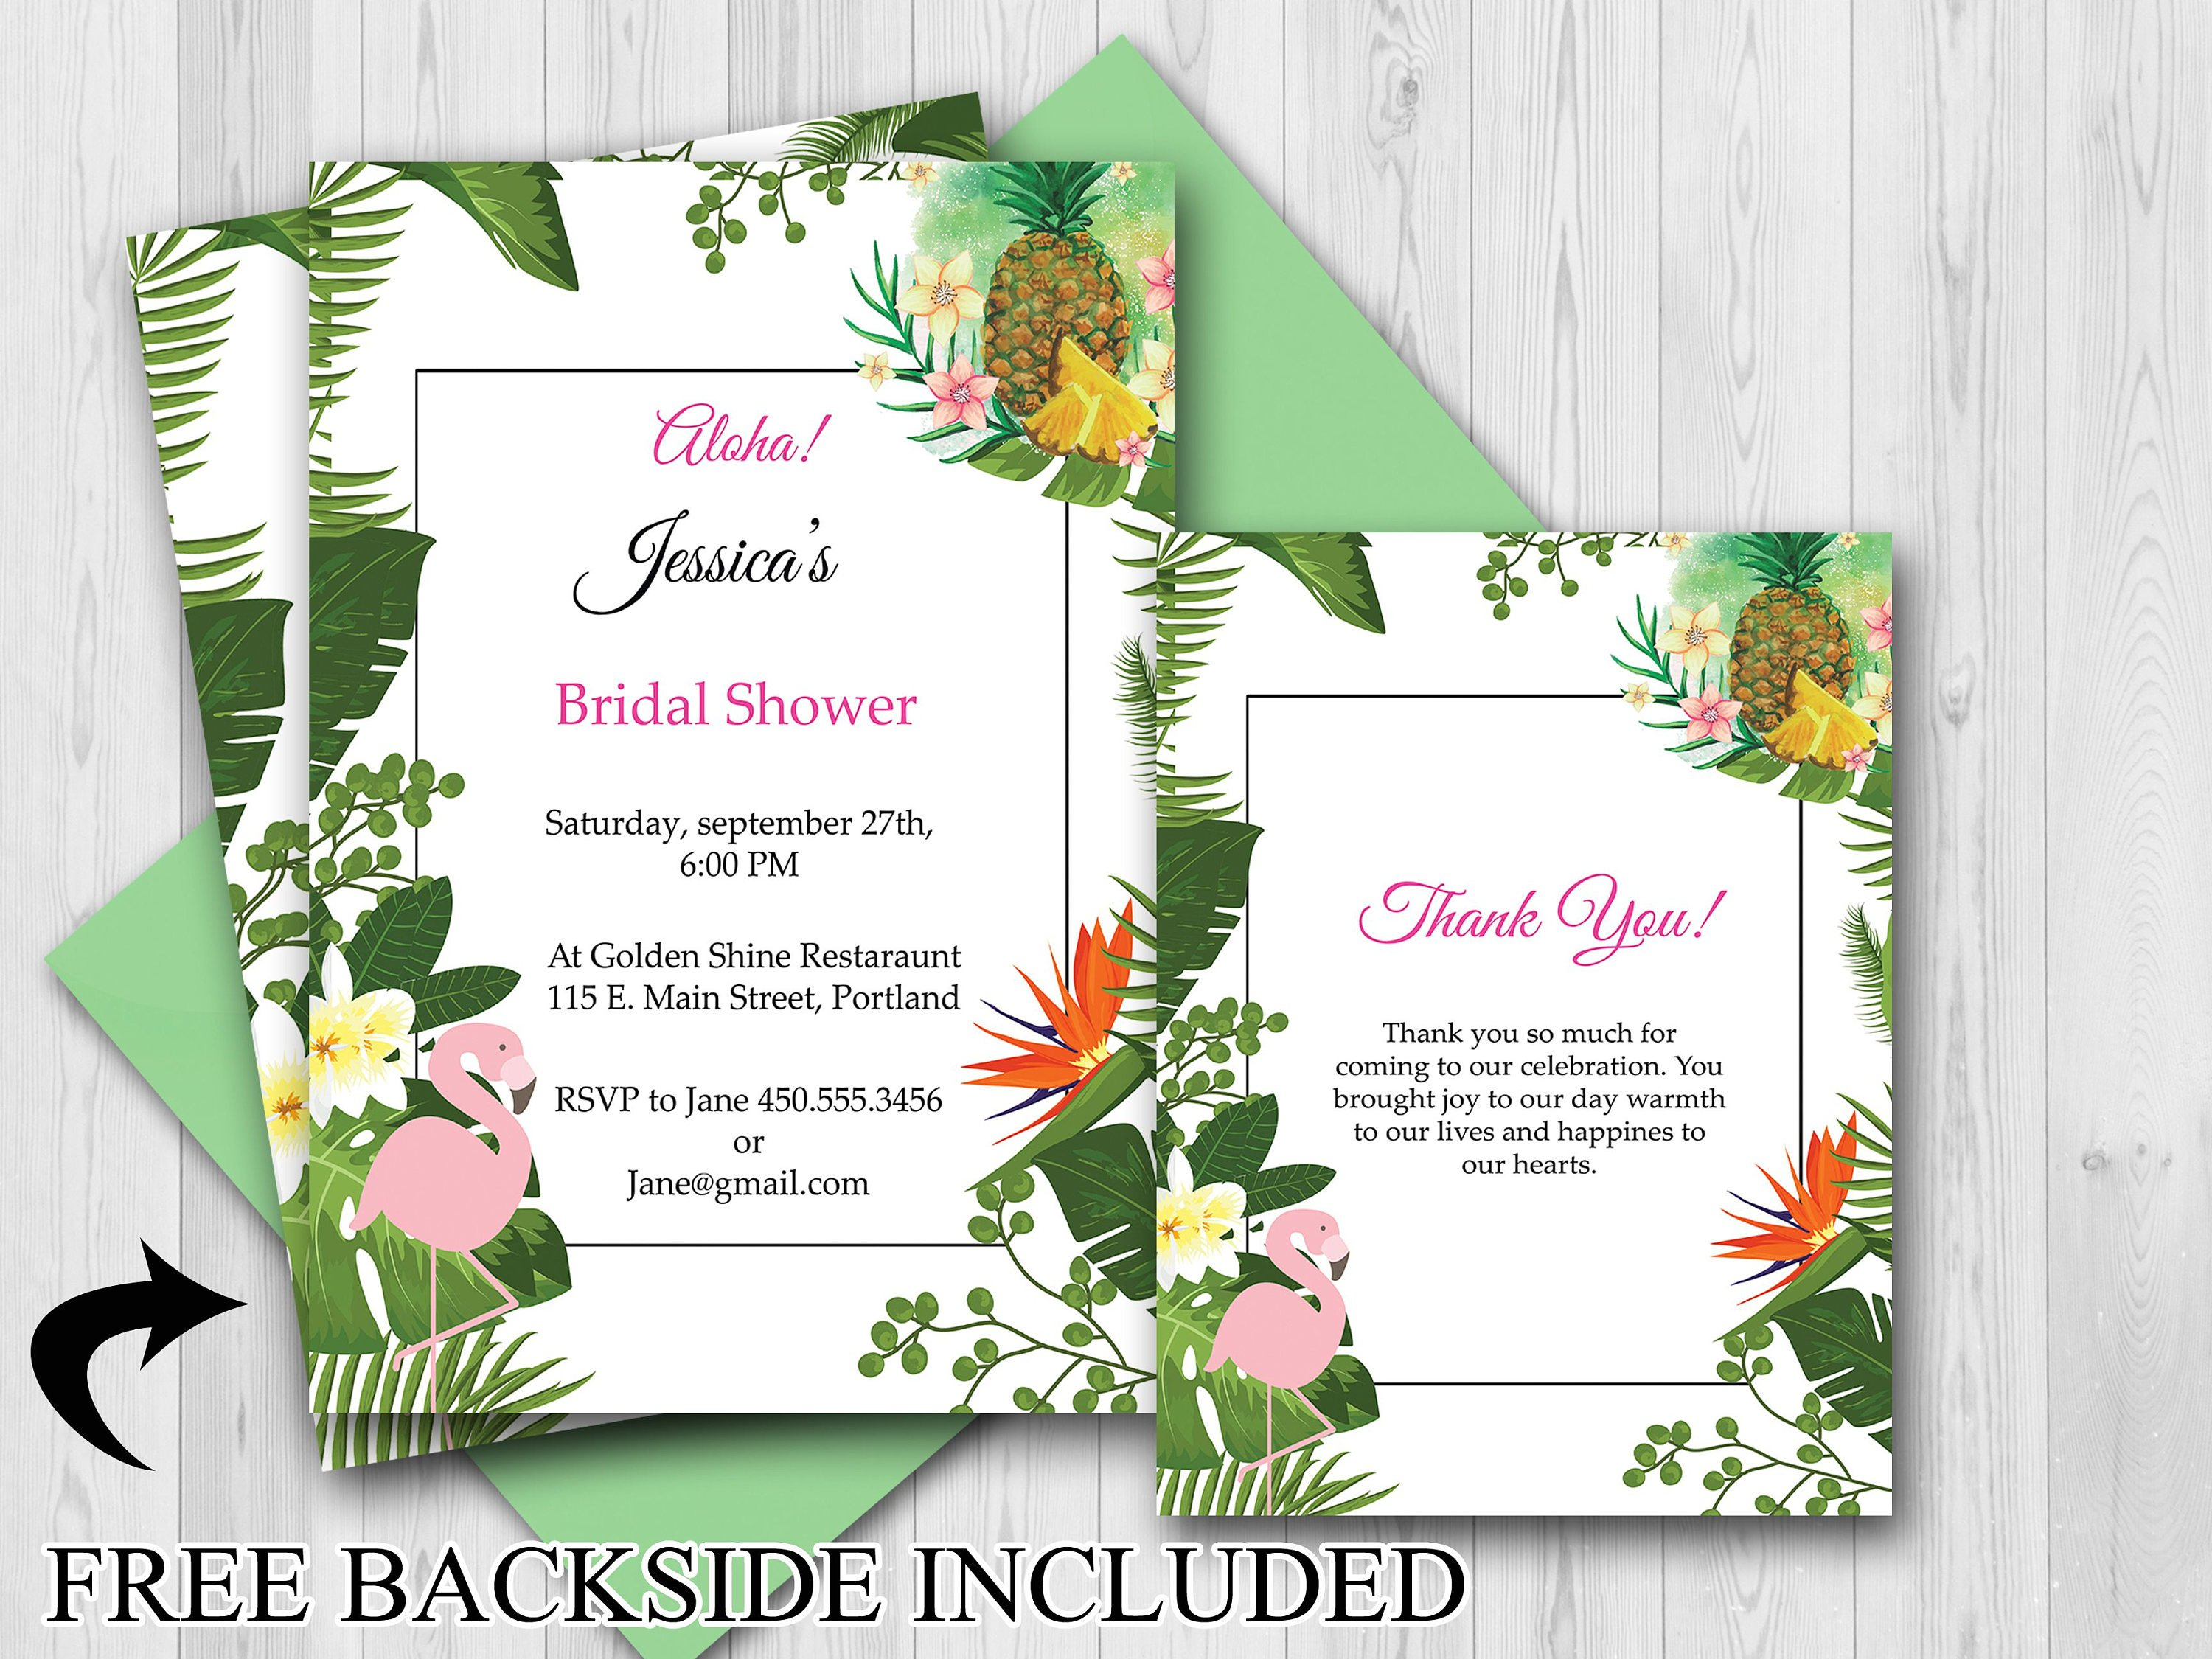 Large Custom Pineapple Bridal Shower Invitation Thank You Cards Flamingo Invite Bridal Shower Invite Tropical Bridal Shower 20000434 From